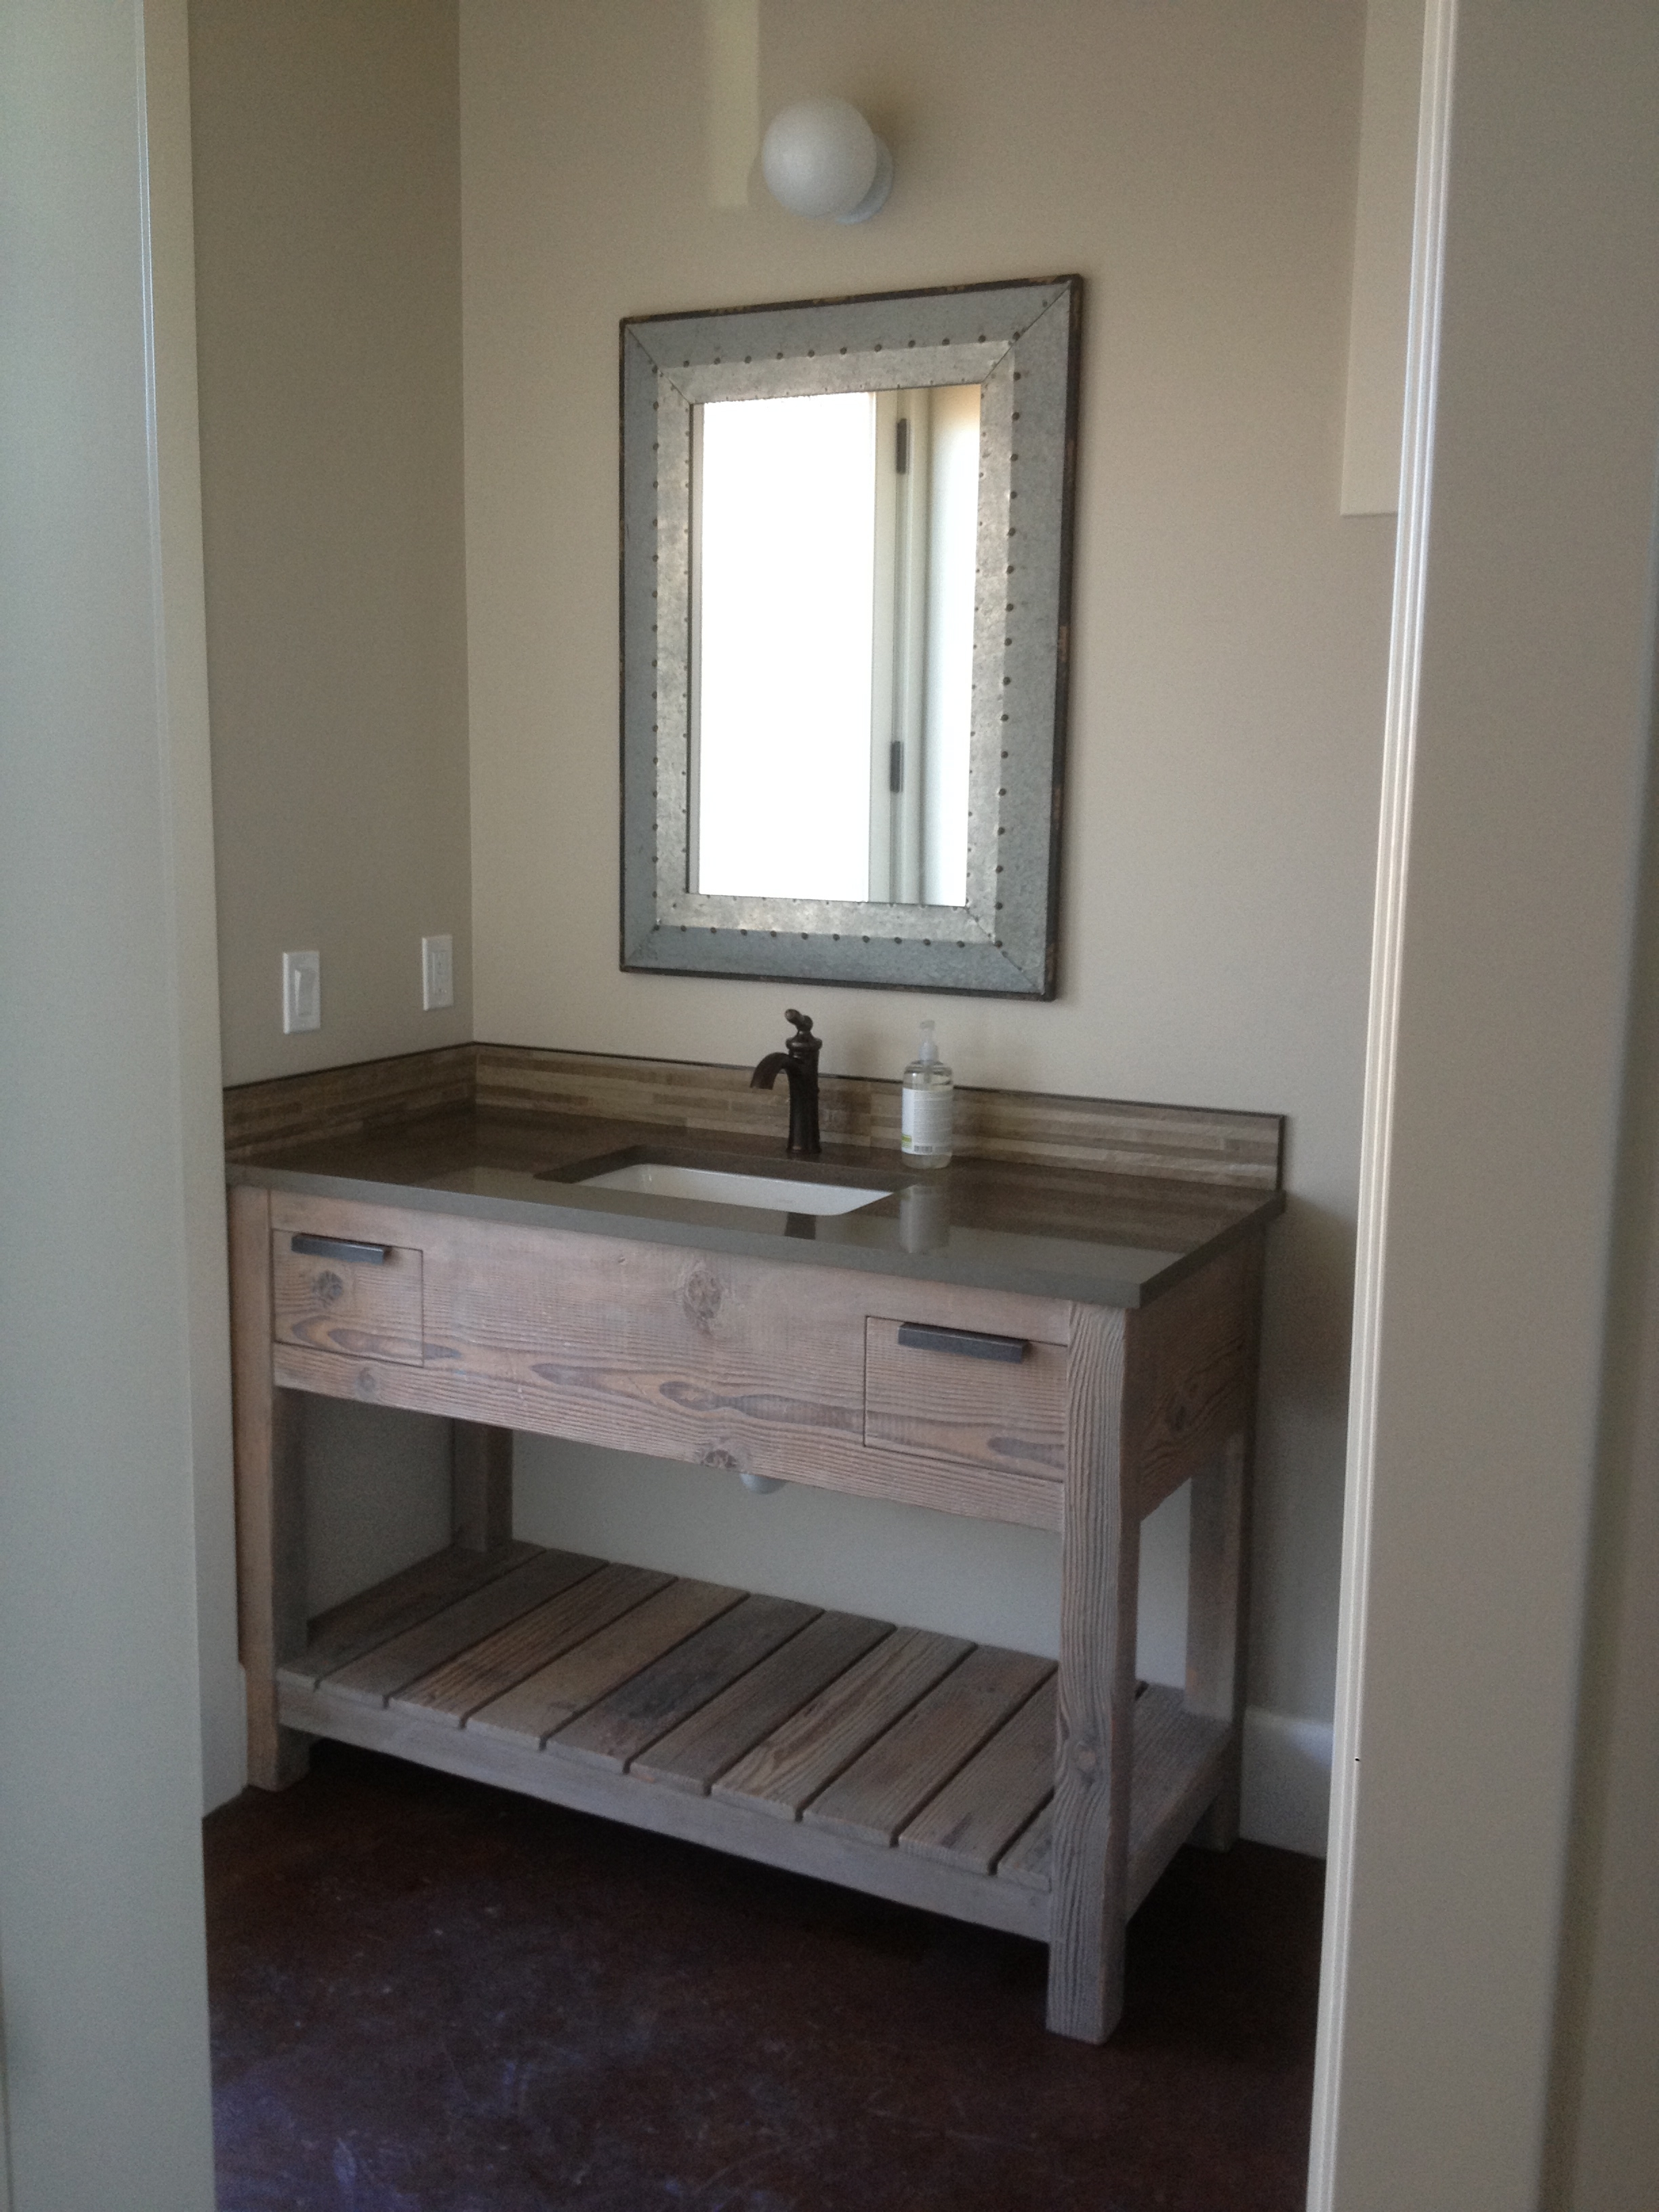 Peachy Ideas Bathroom Vanity Farmhouse Style Home Design Amazing